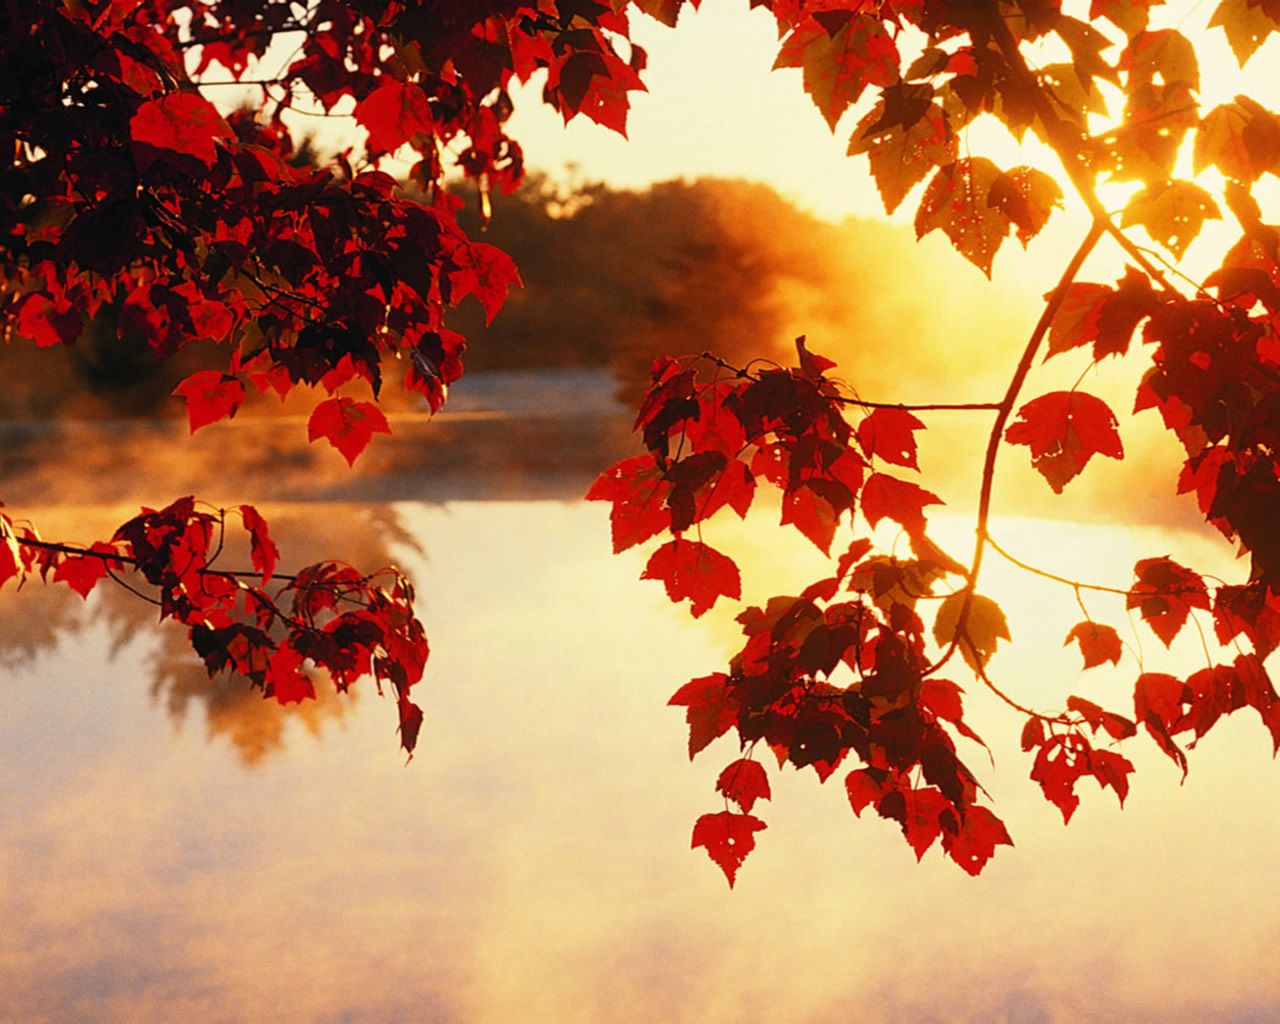 Autumn Wallpaper HD Wallpaper 10